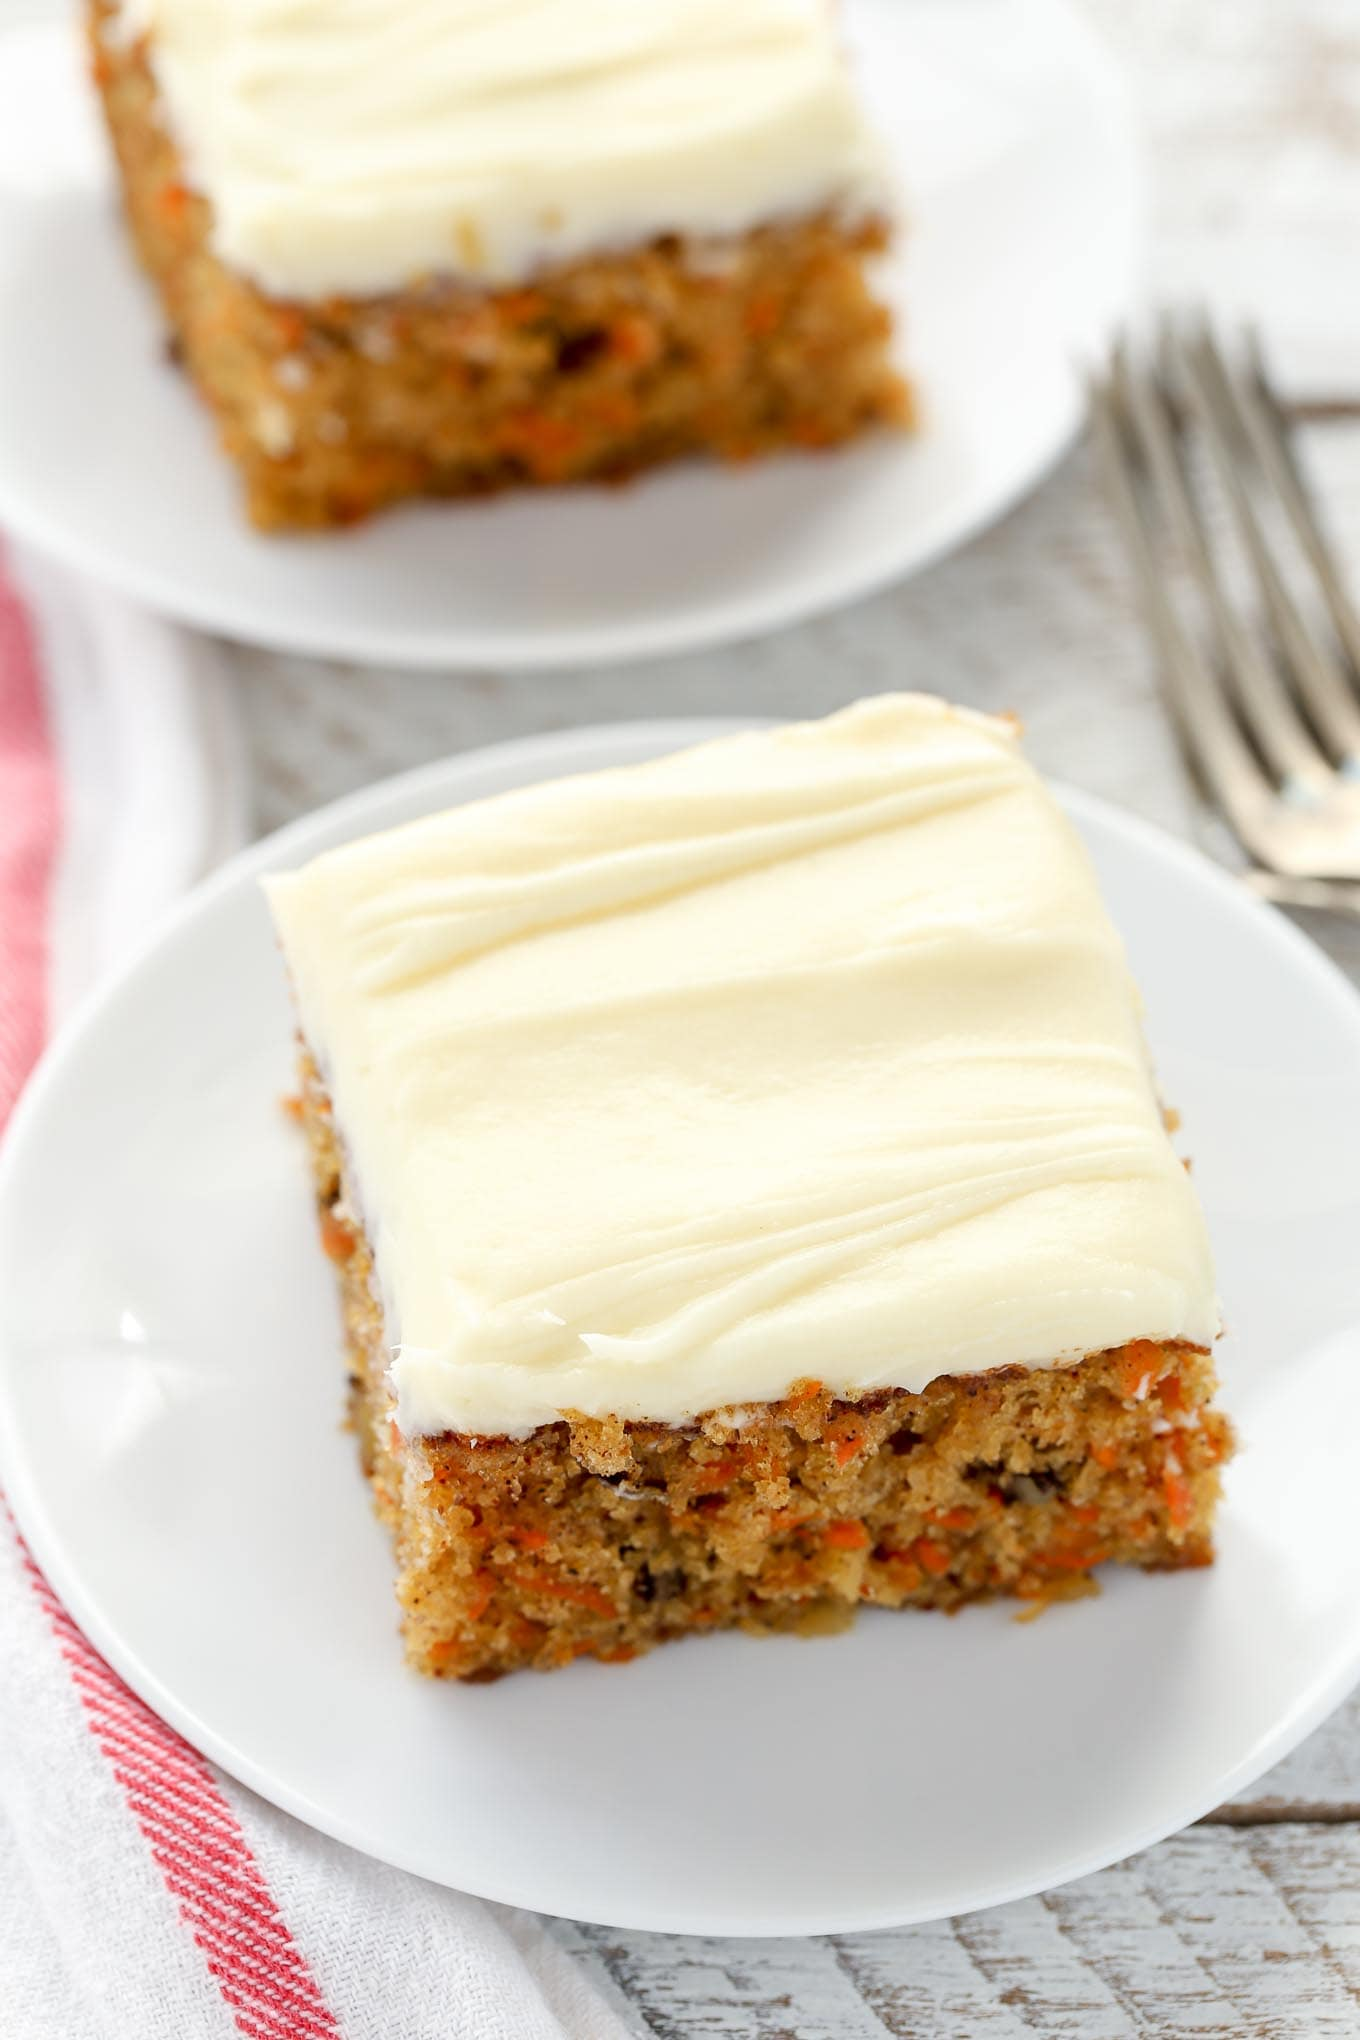 Pineapple Carrot Cake with Cream Cheese Frosting A moist carrot cake filled with crushed pineapple  chopped walnuts  and  topped with an